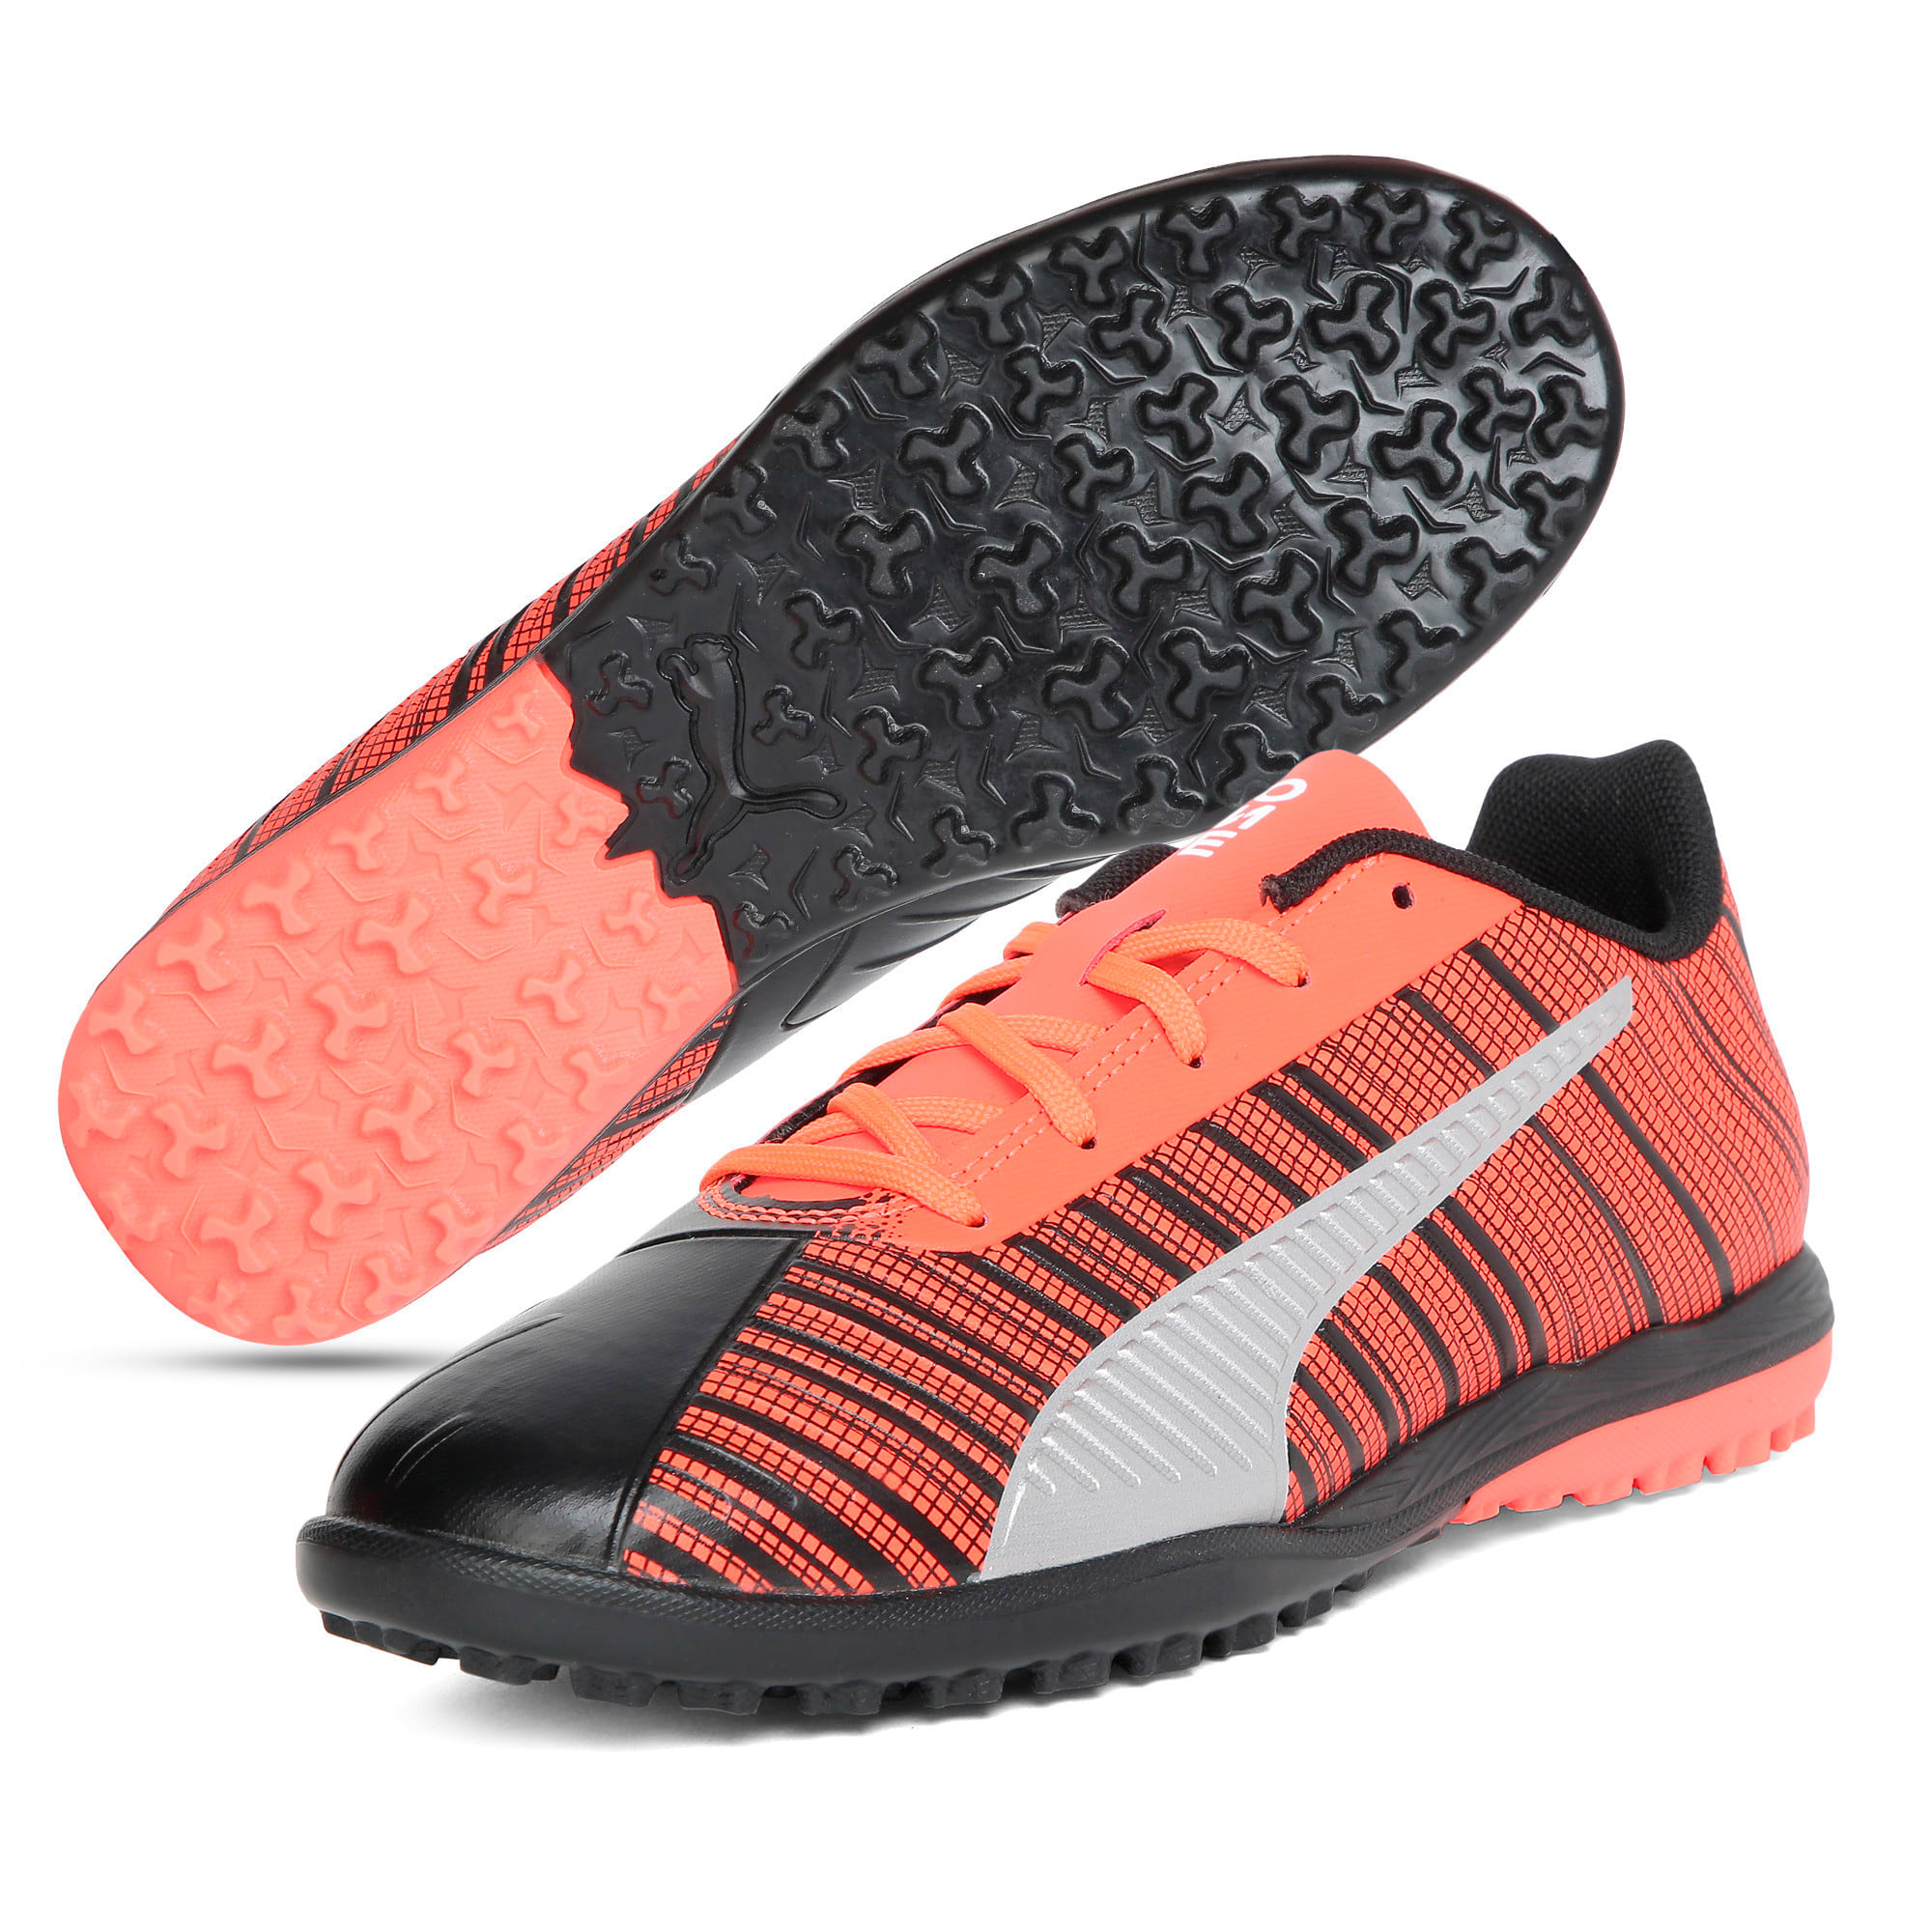 Thumbnail 2 of PUMA ONE 5.4 TT Youth Football Boots, Black-Nrgy Red-Aged Silver, medium-IND